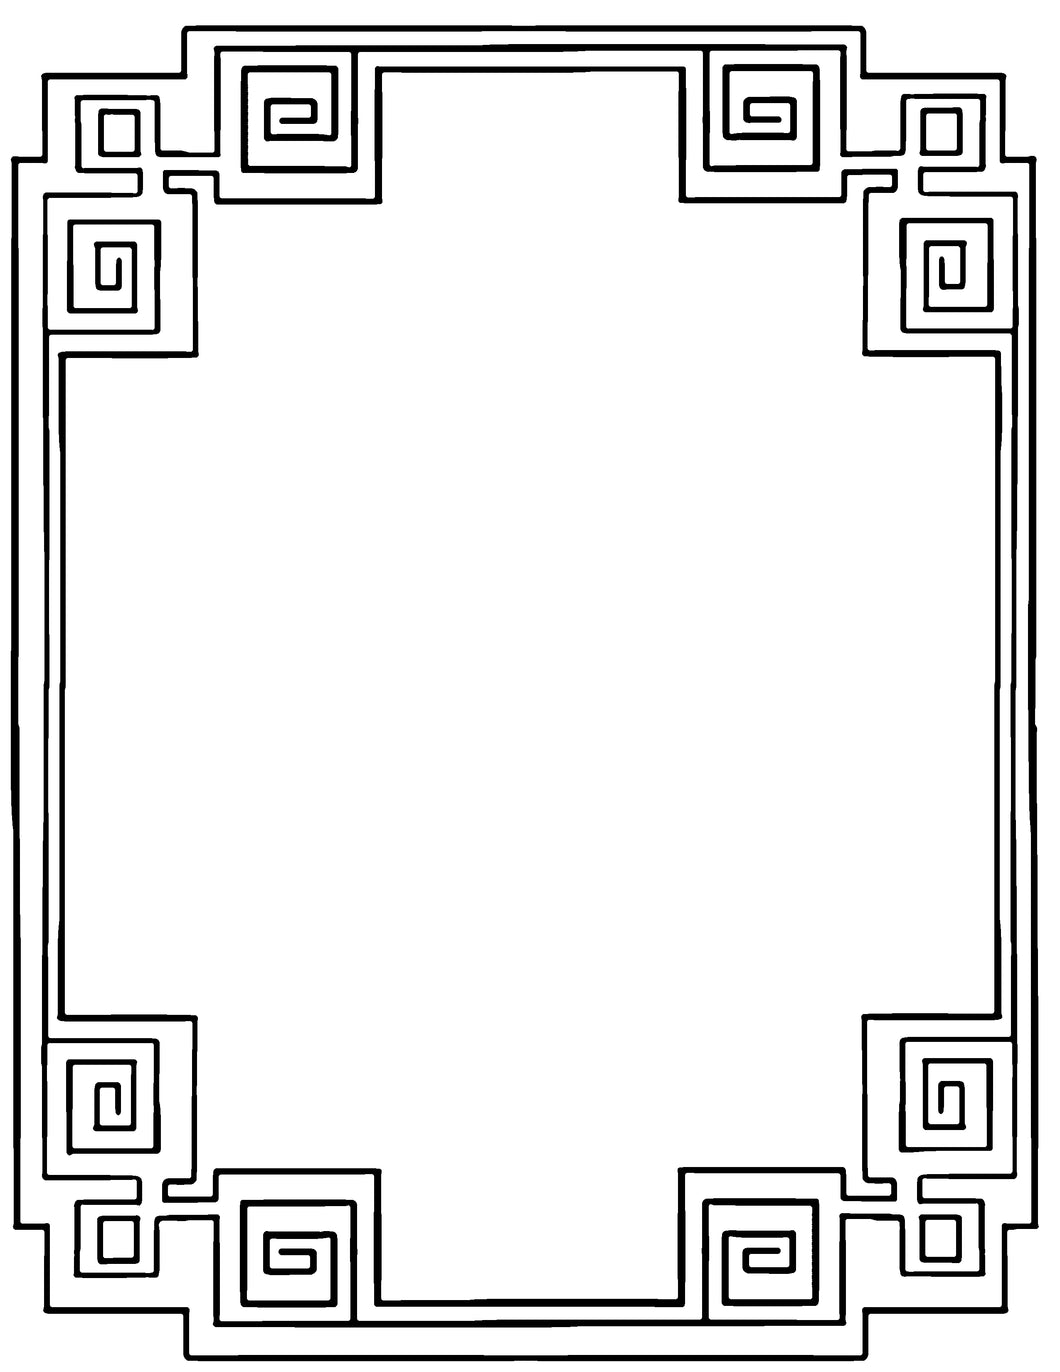 Free Printable Coloring Sheet III (Use Link Below!)